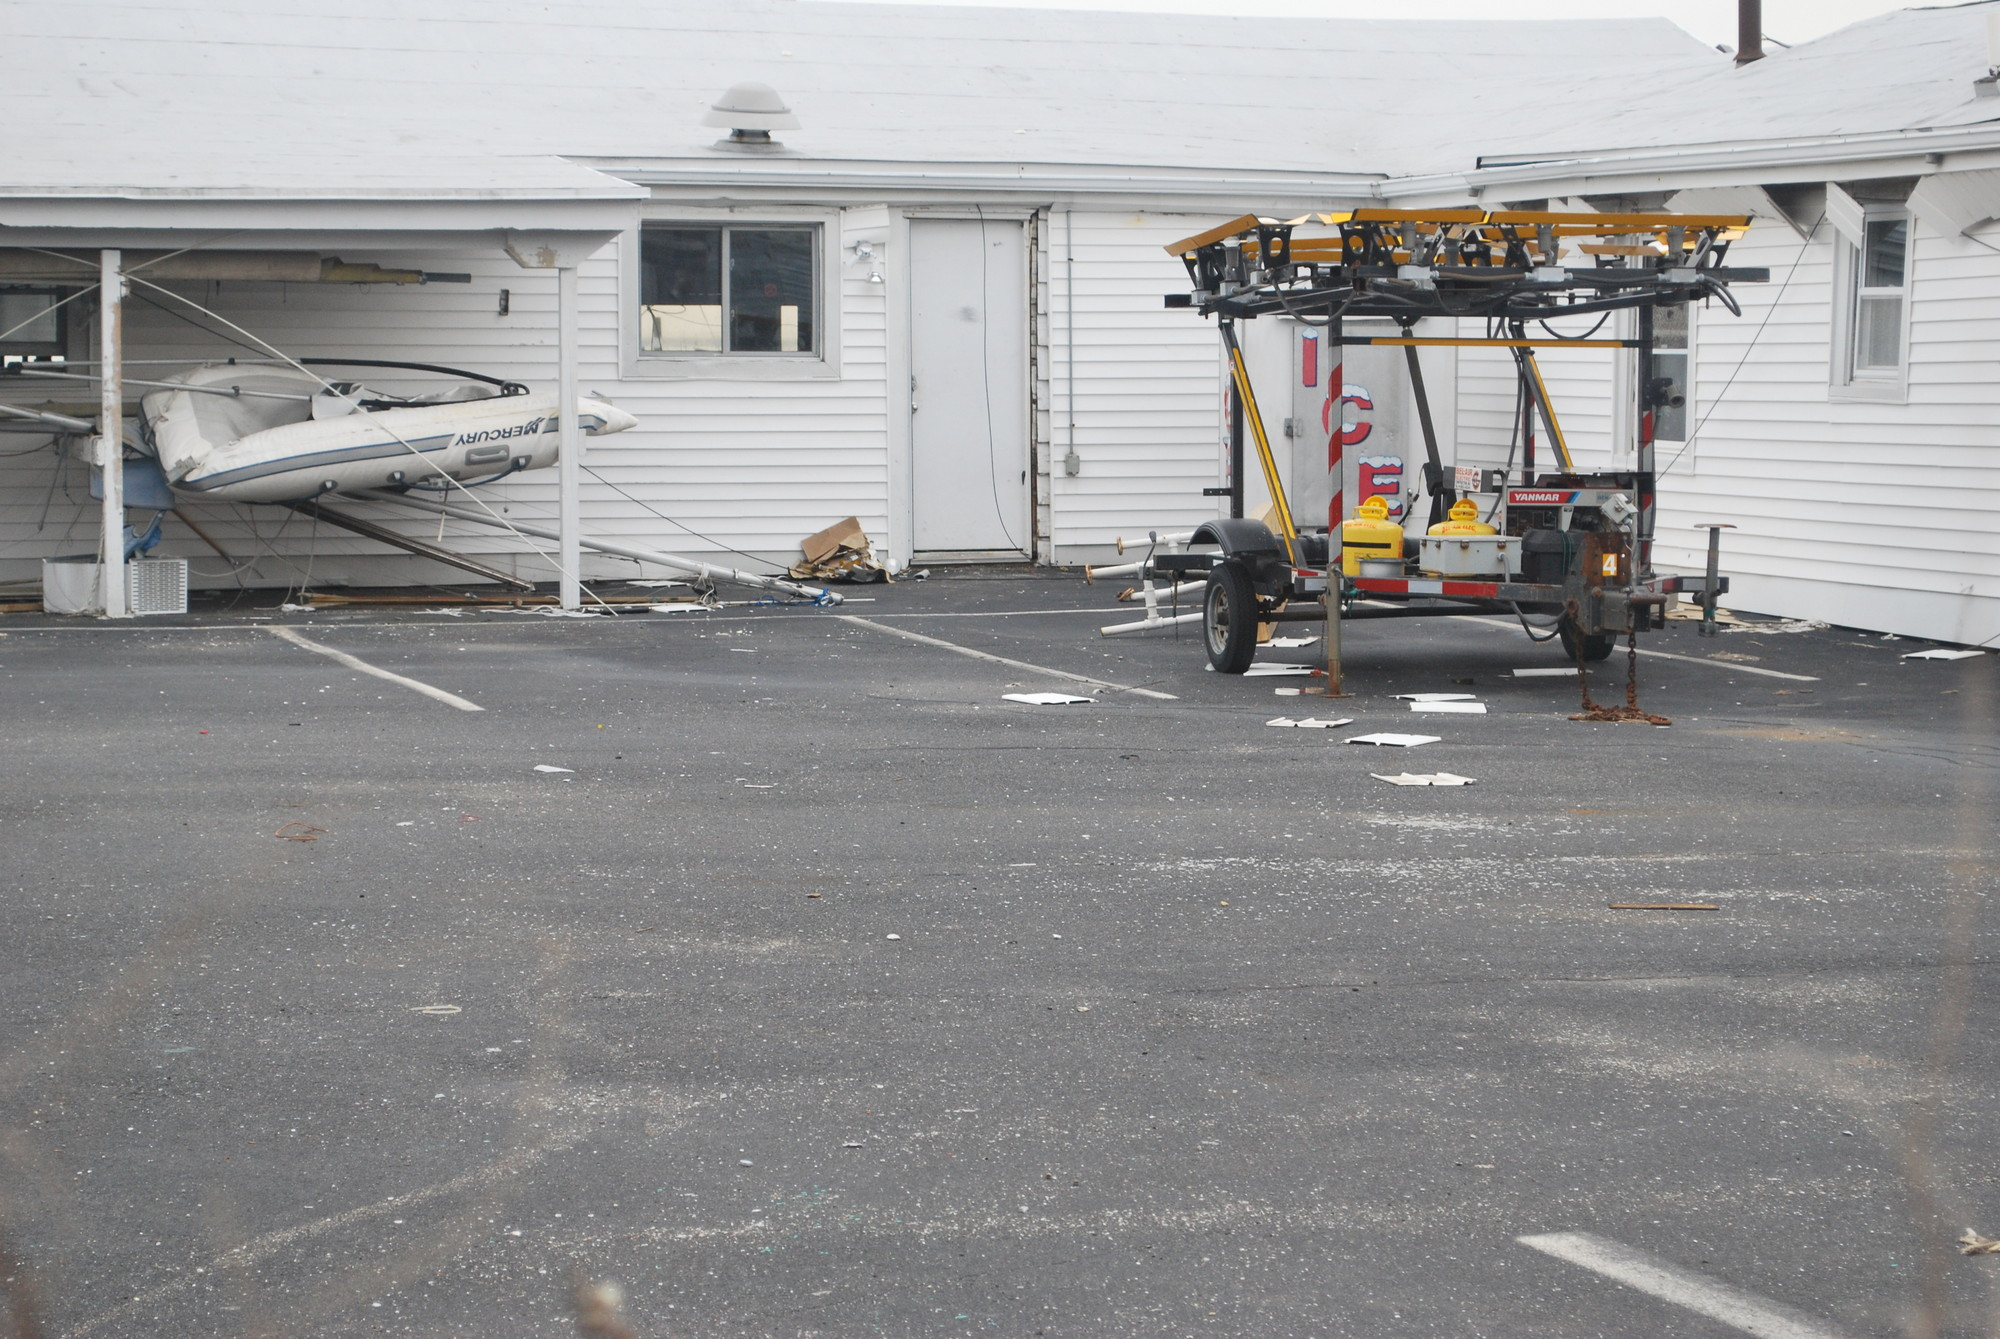 Boat storage areas and the clubhouse building were damaged in Hurricane Sandy.